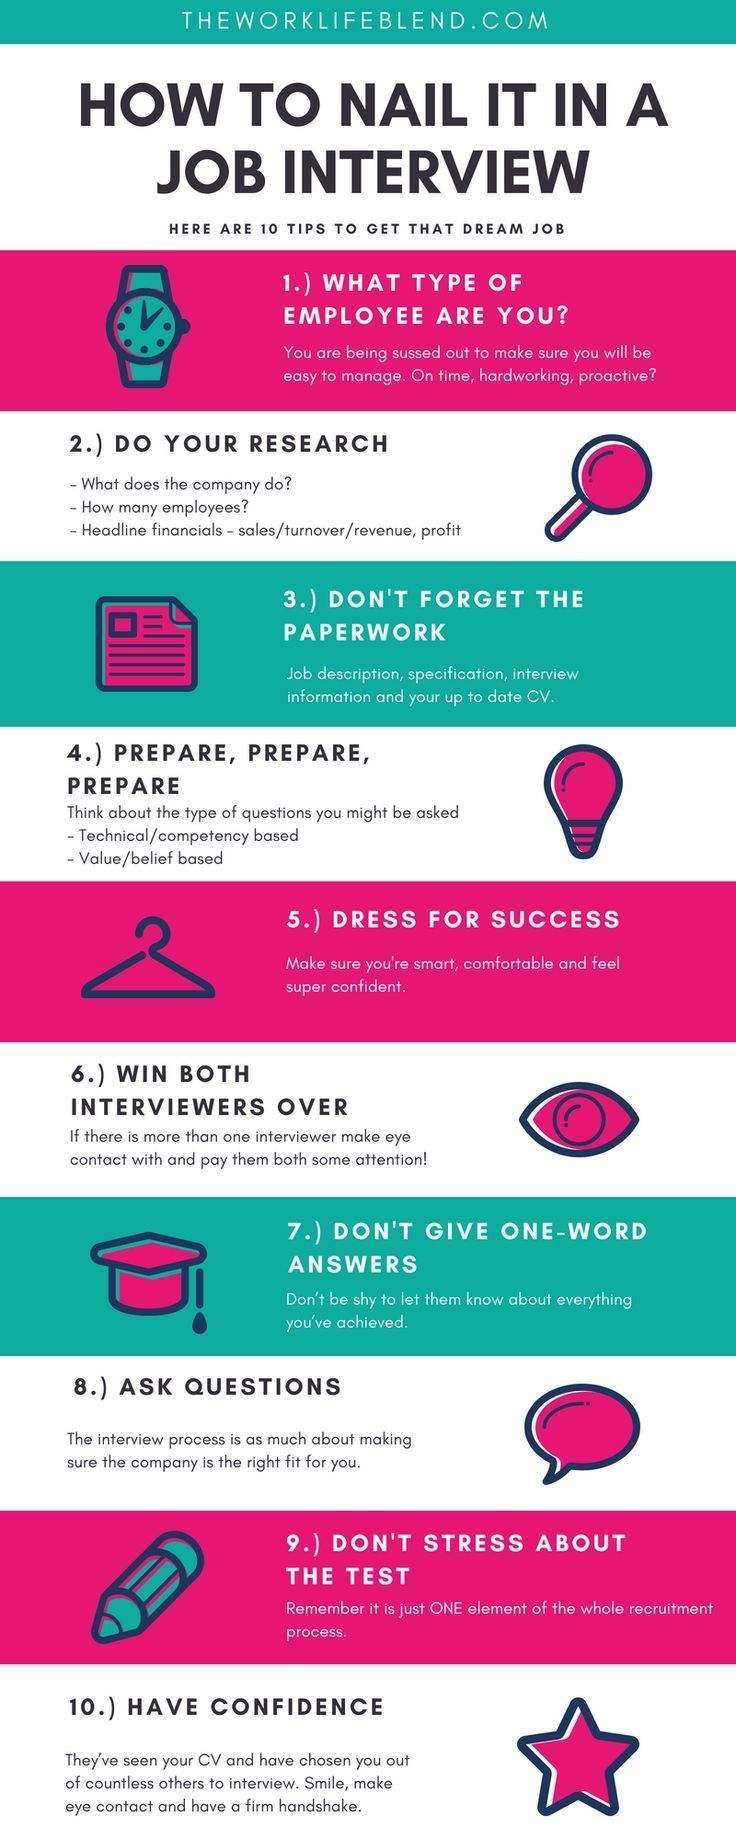 how to nail it in a job interview infographic  awesome tips to get your dream job   all the best